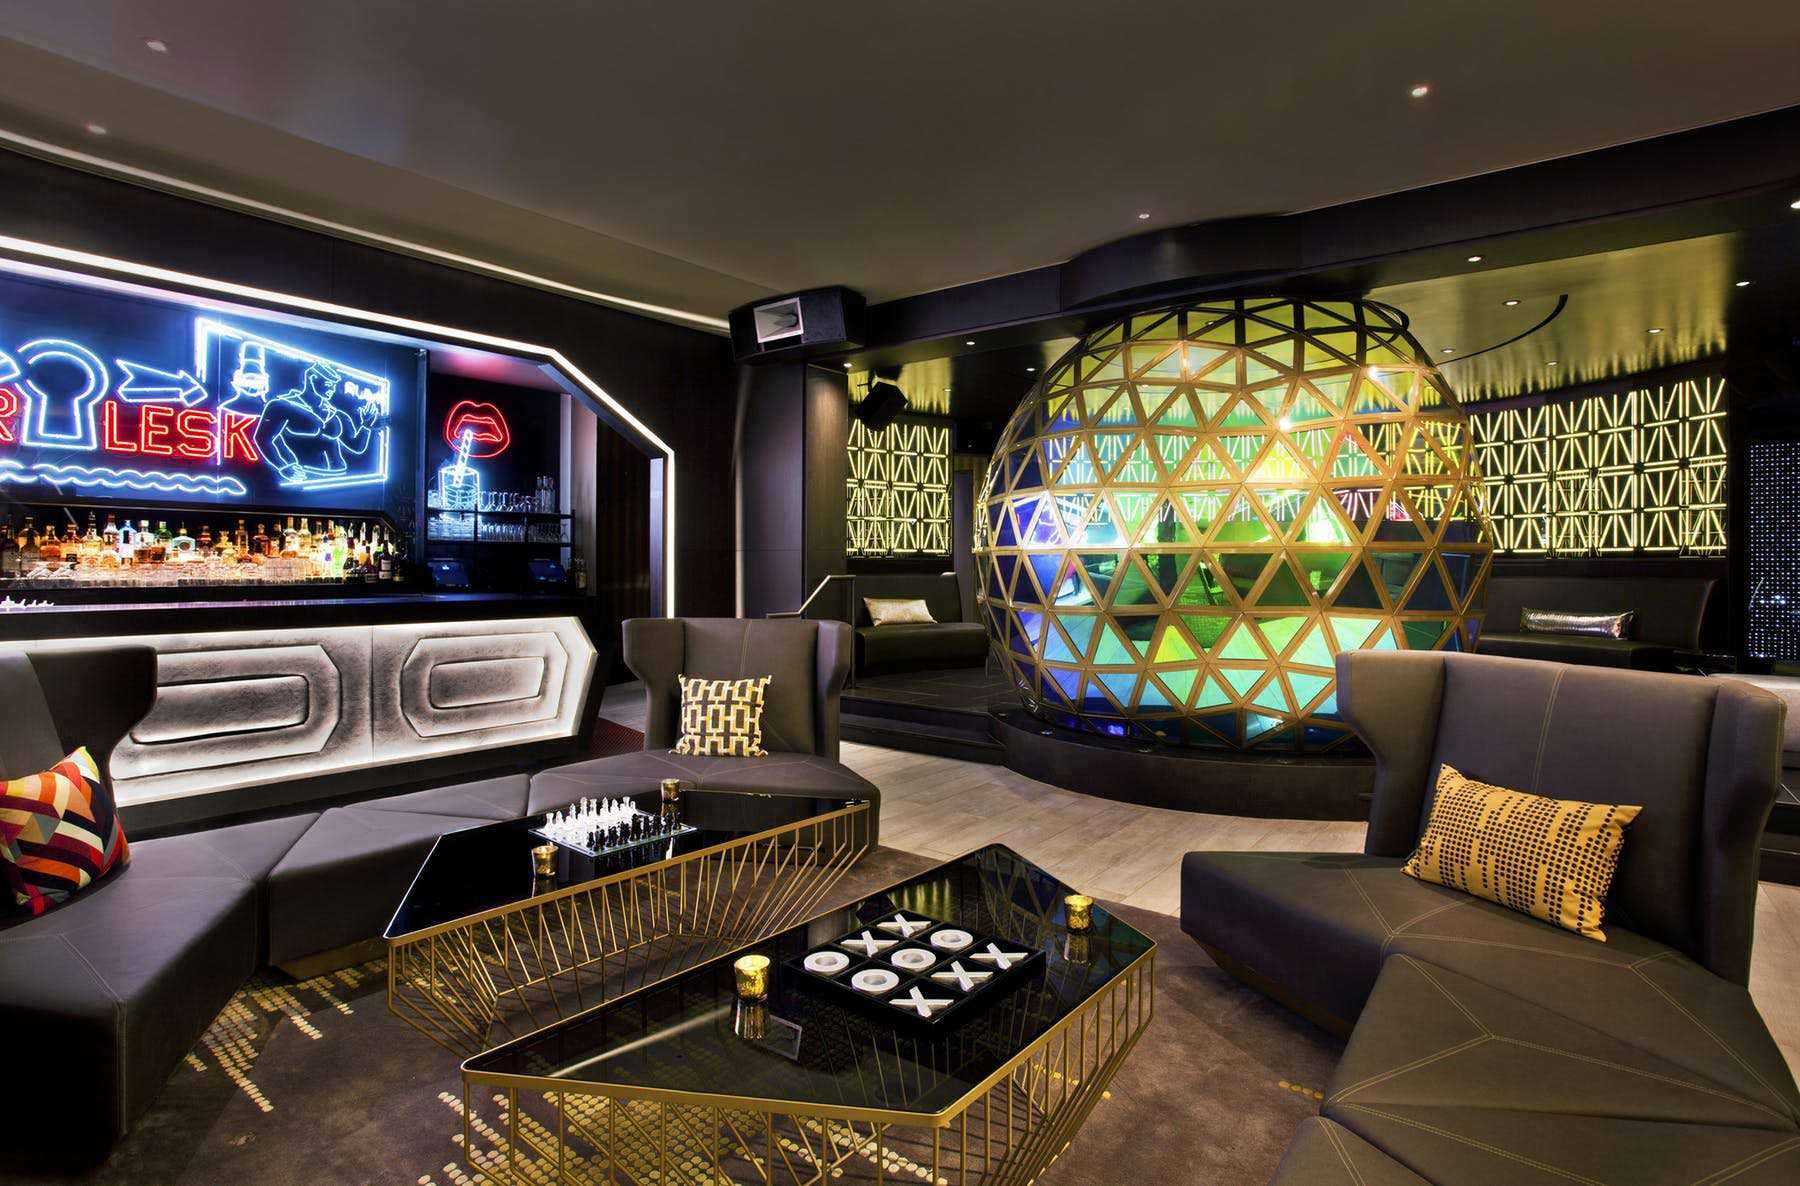 lounge room with two leather couches and modern decor